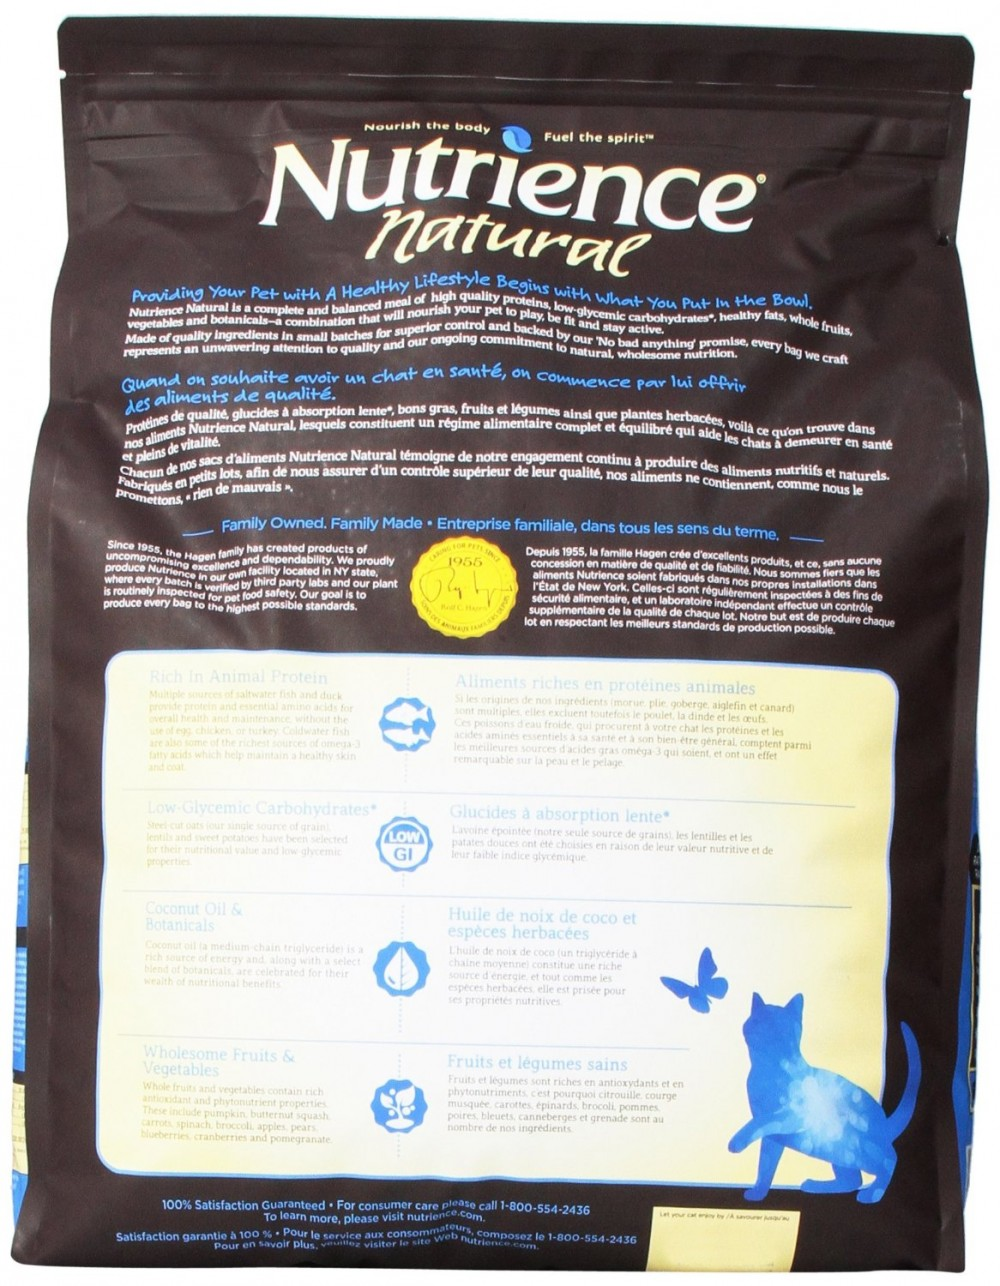 Nutrience Natural bag's back